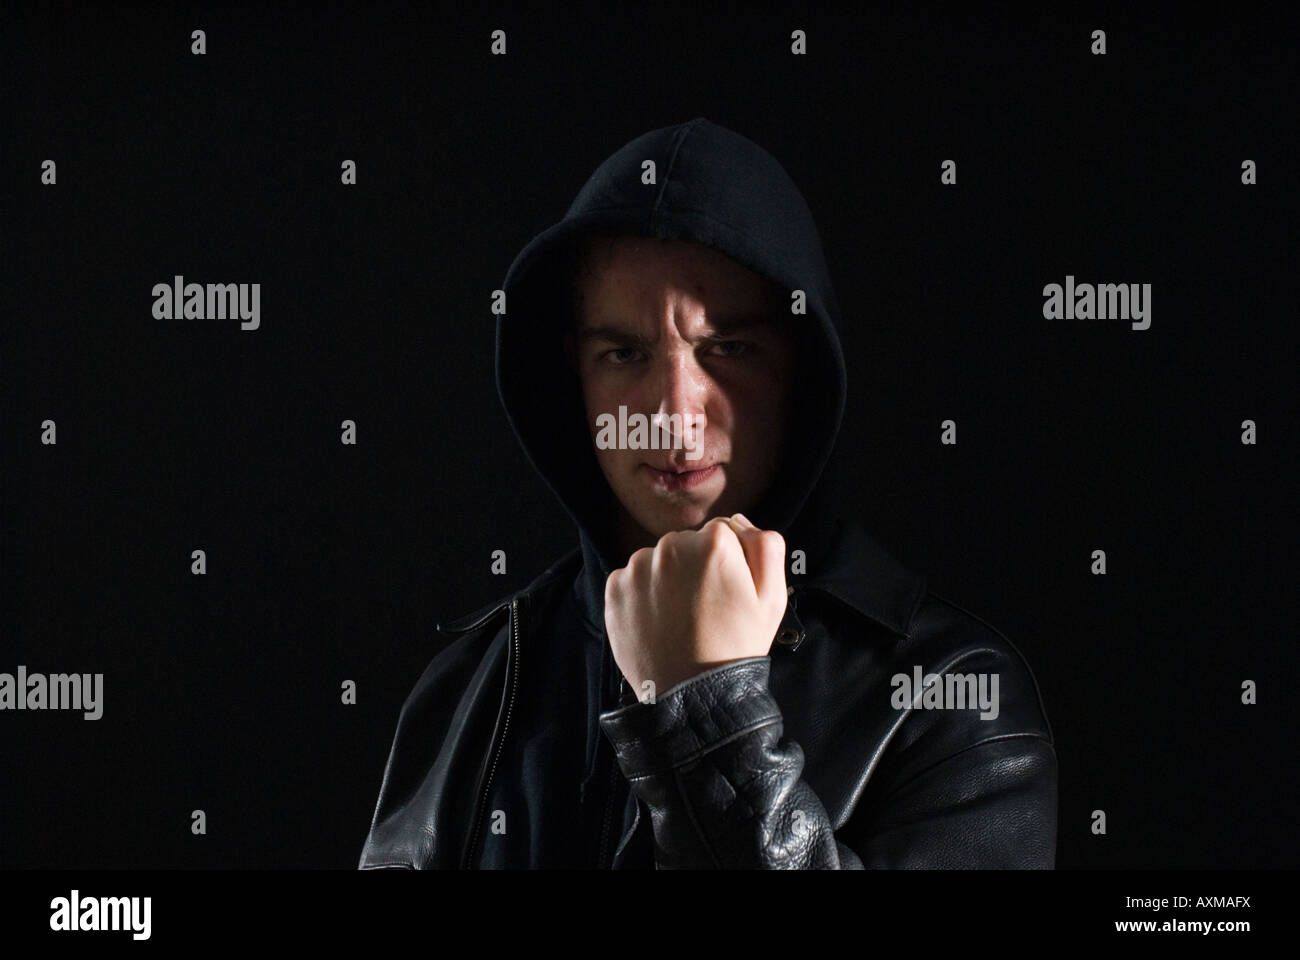 Teenage lout threatening with fist - Stock Image